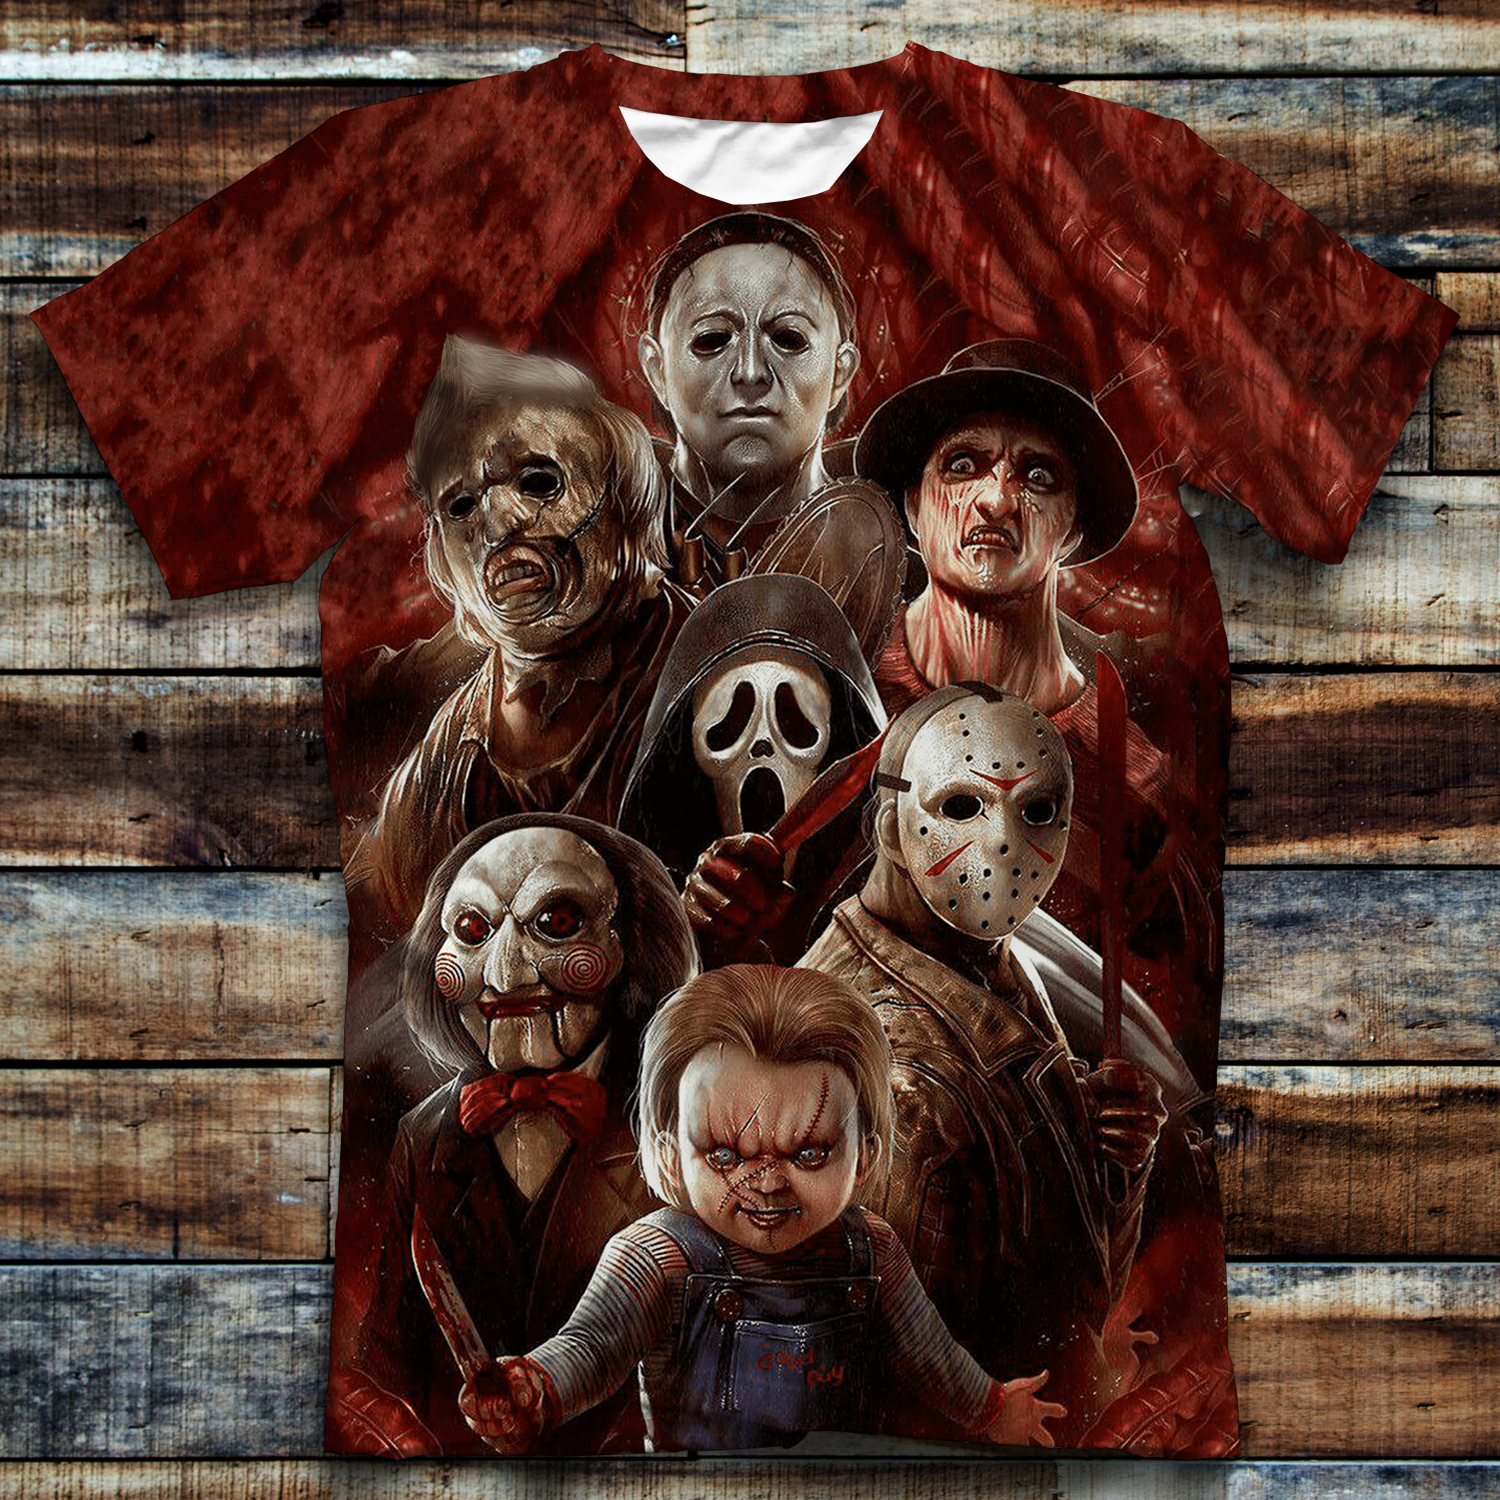 2019 Summer Fashion Tees Horror Movie Chucky 3D Printed Tshirt Men Tops Unique Clothing Short Sleeve Men T Shirt Drop Shipping